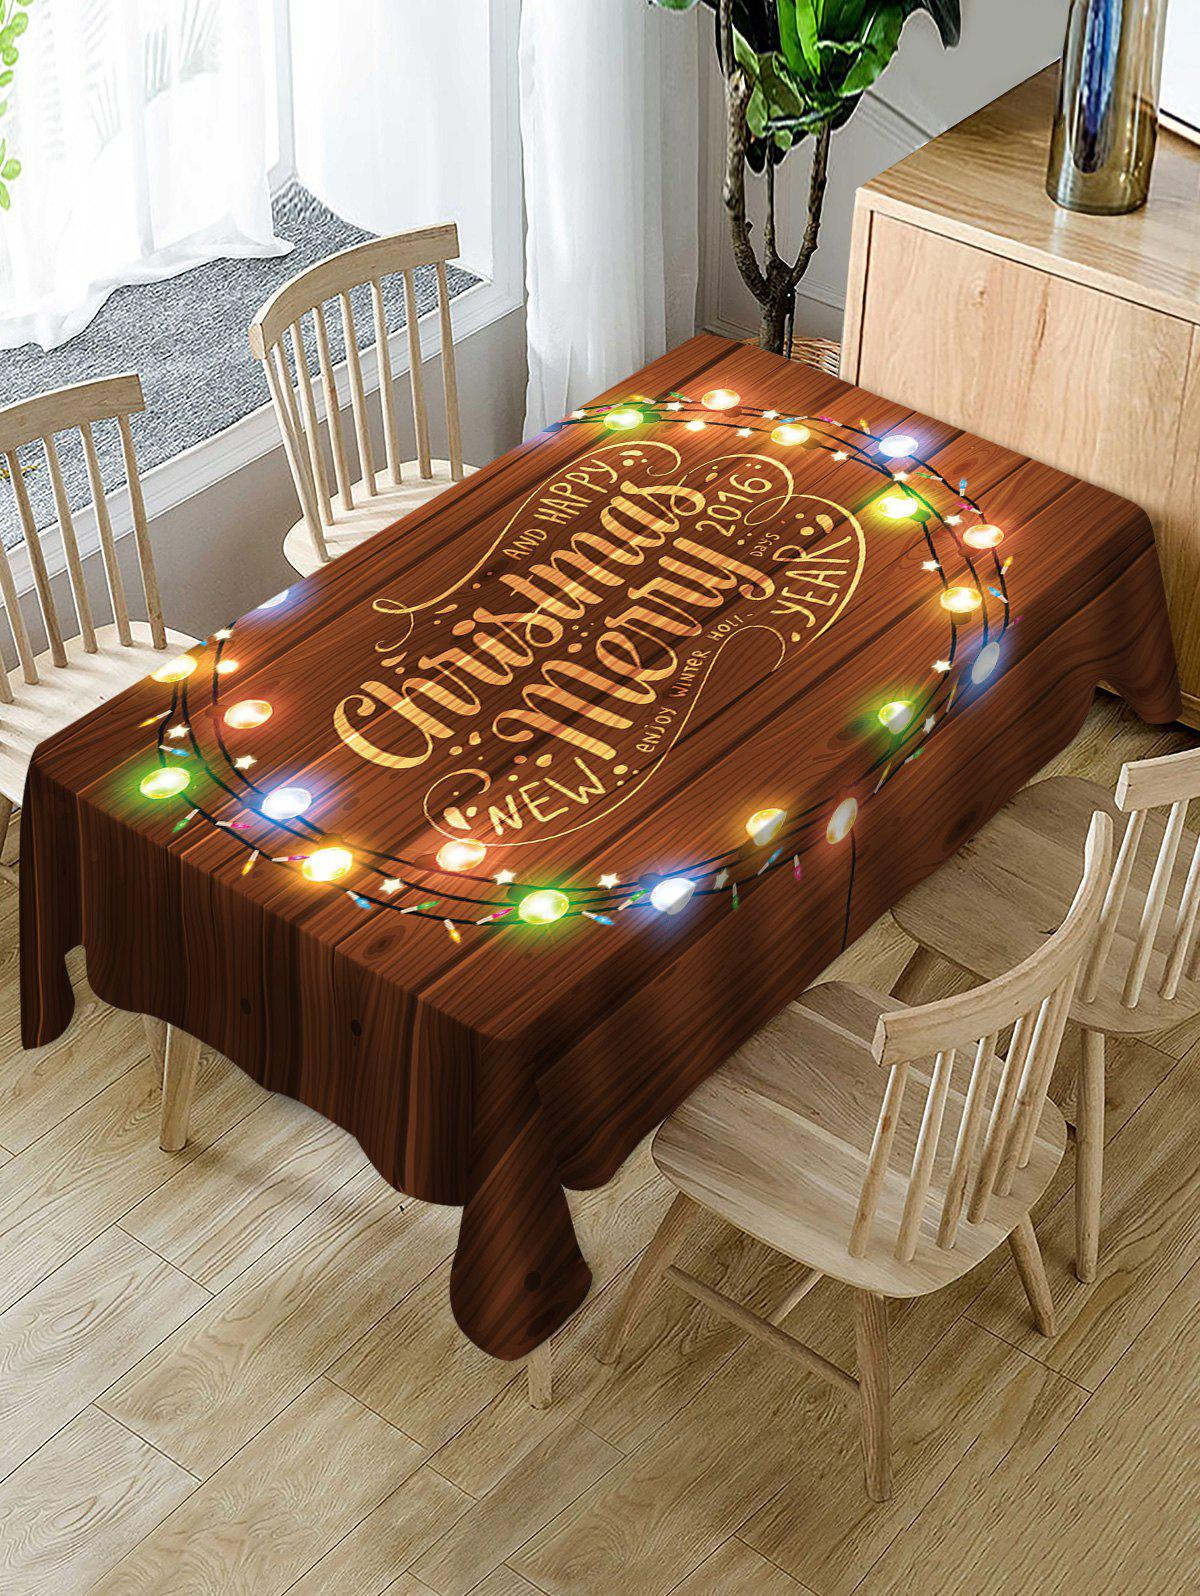 Latest Merry Christmas Light Fabric Waterproof Table Cloth